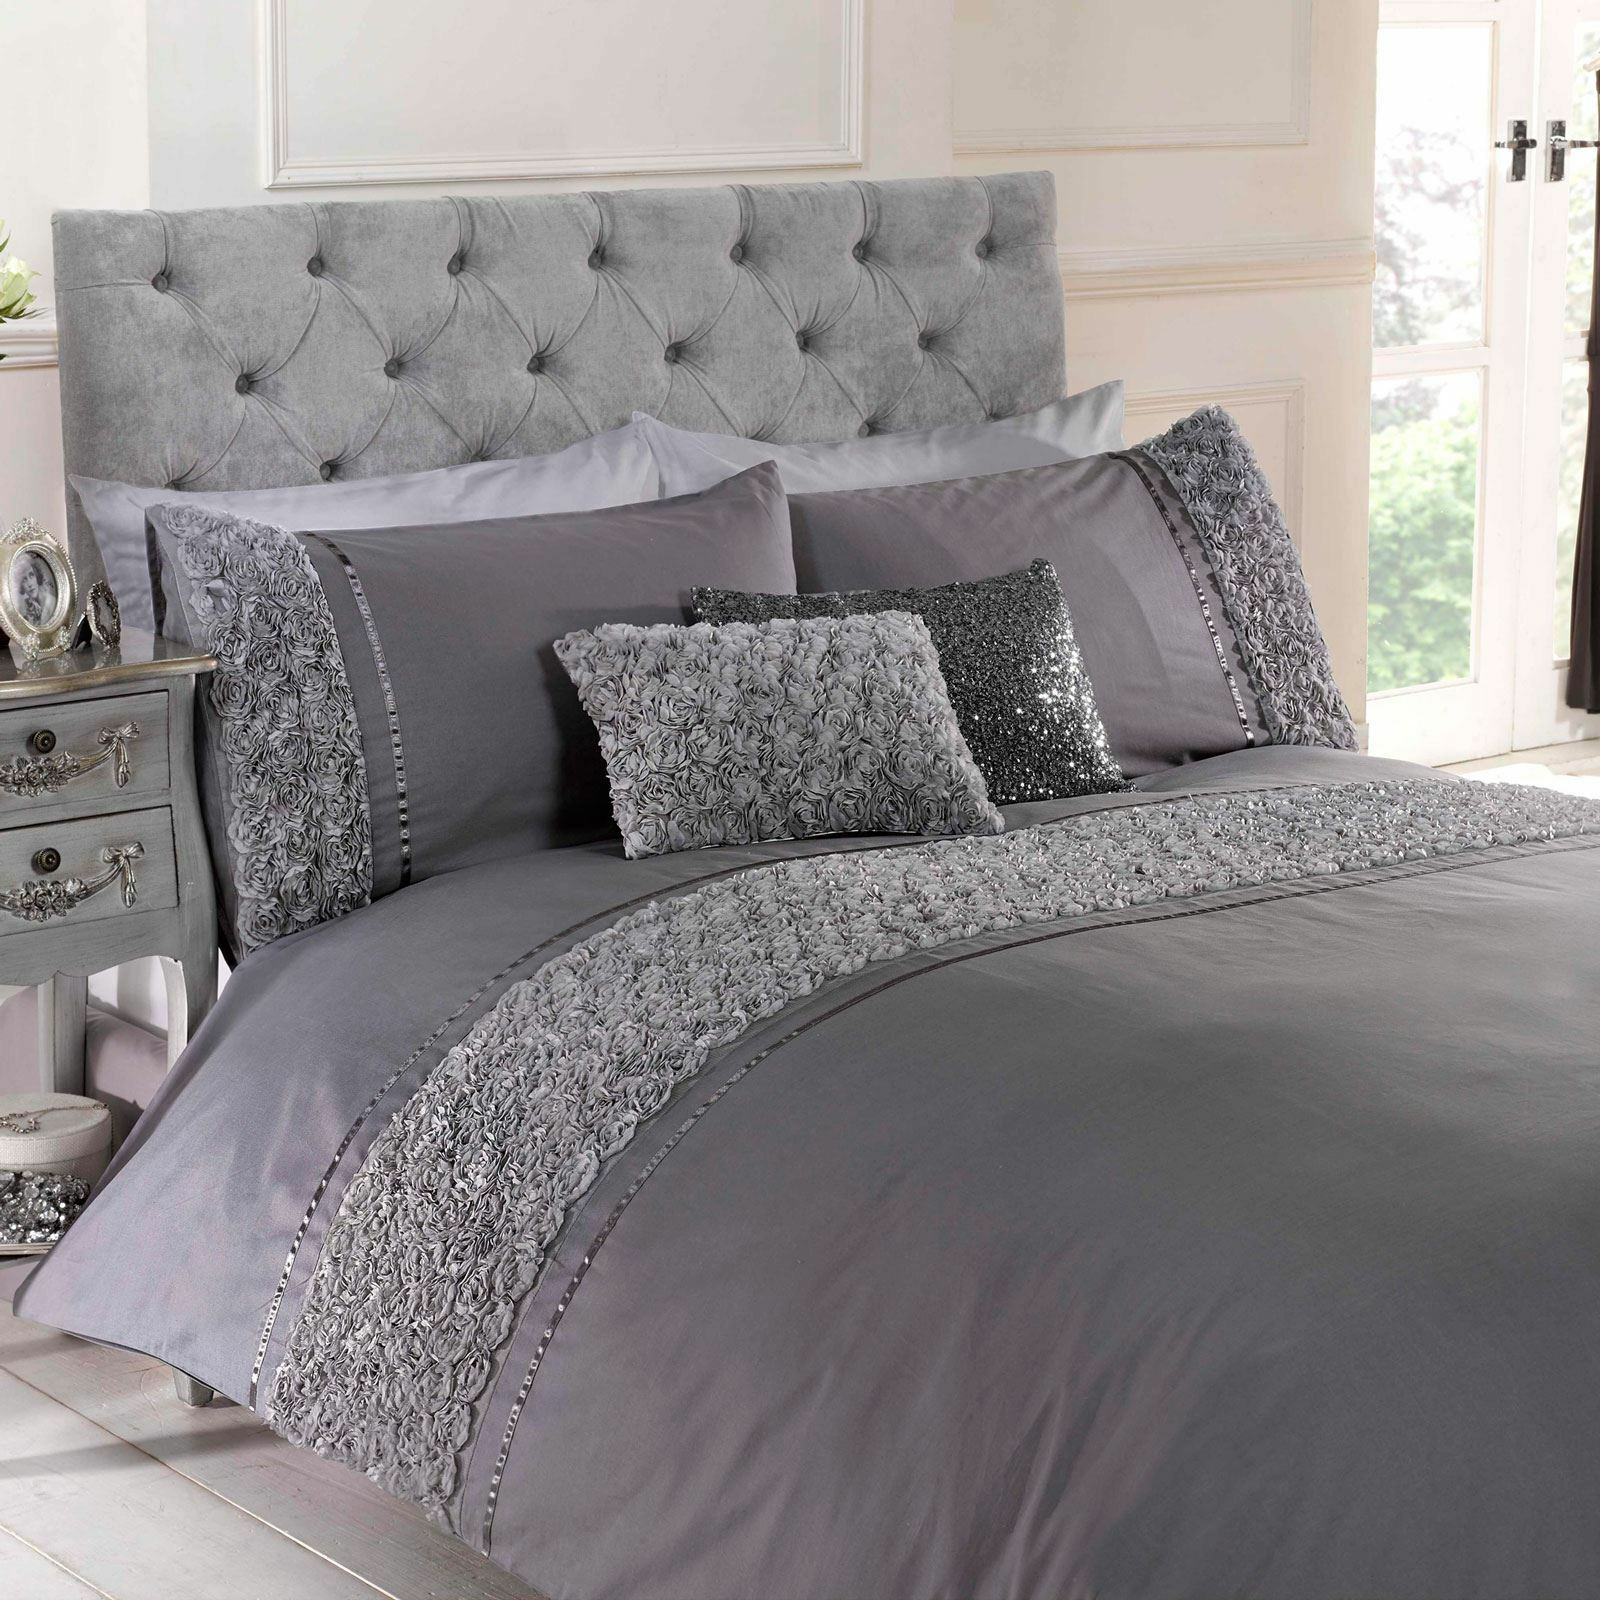 LIMOGES pink RUFFLE GREY SUPER KING SIZE DUVET COVER & PILLOWCASE SET